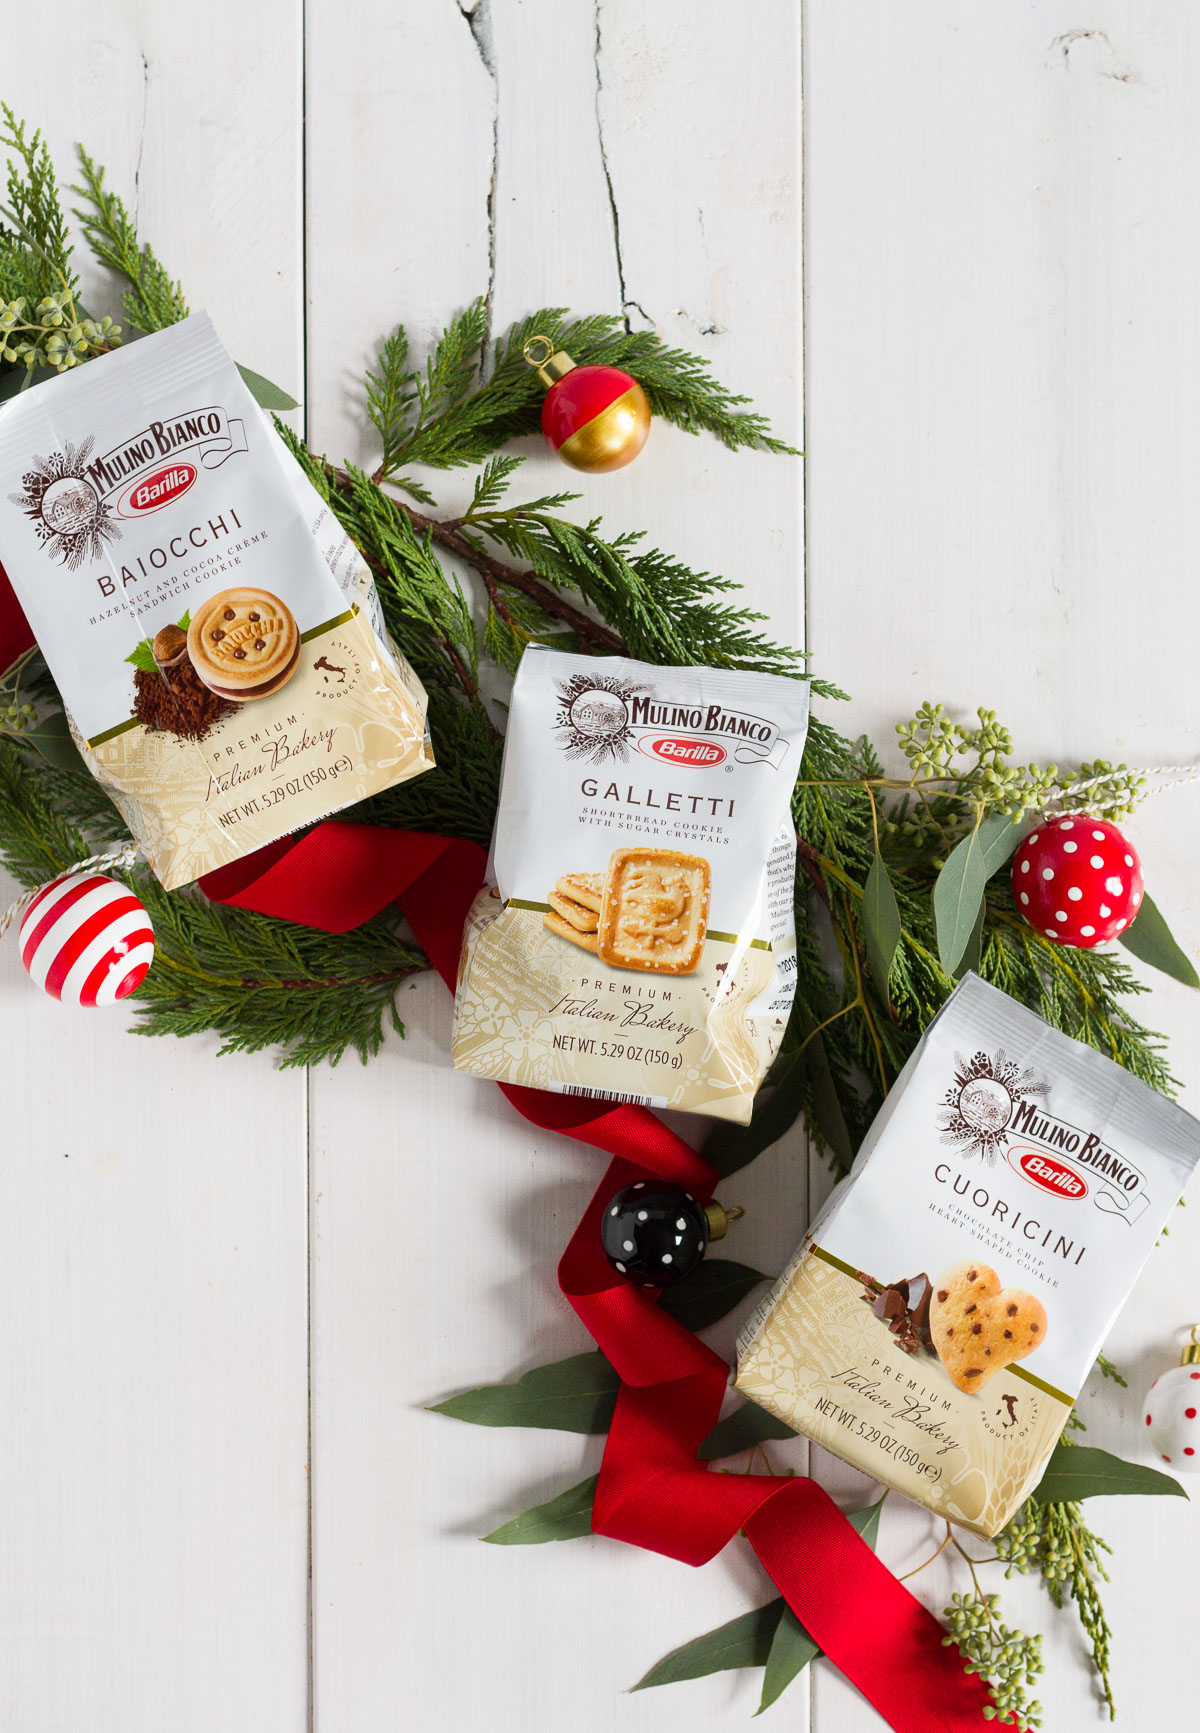 I've got an easy recipe for the perfect gift basket every time: pair a cute treat with a delicious snack like Mulino Bianco cookies from the grocery store!